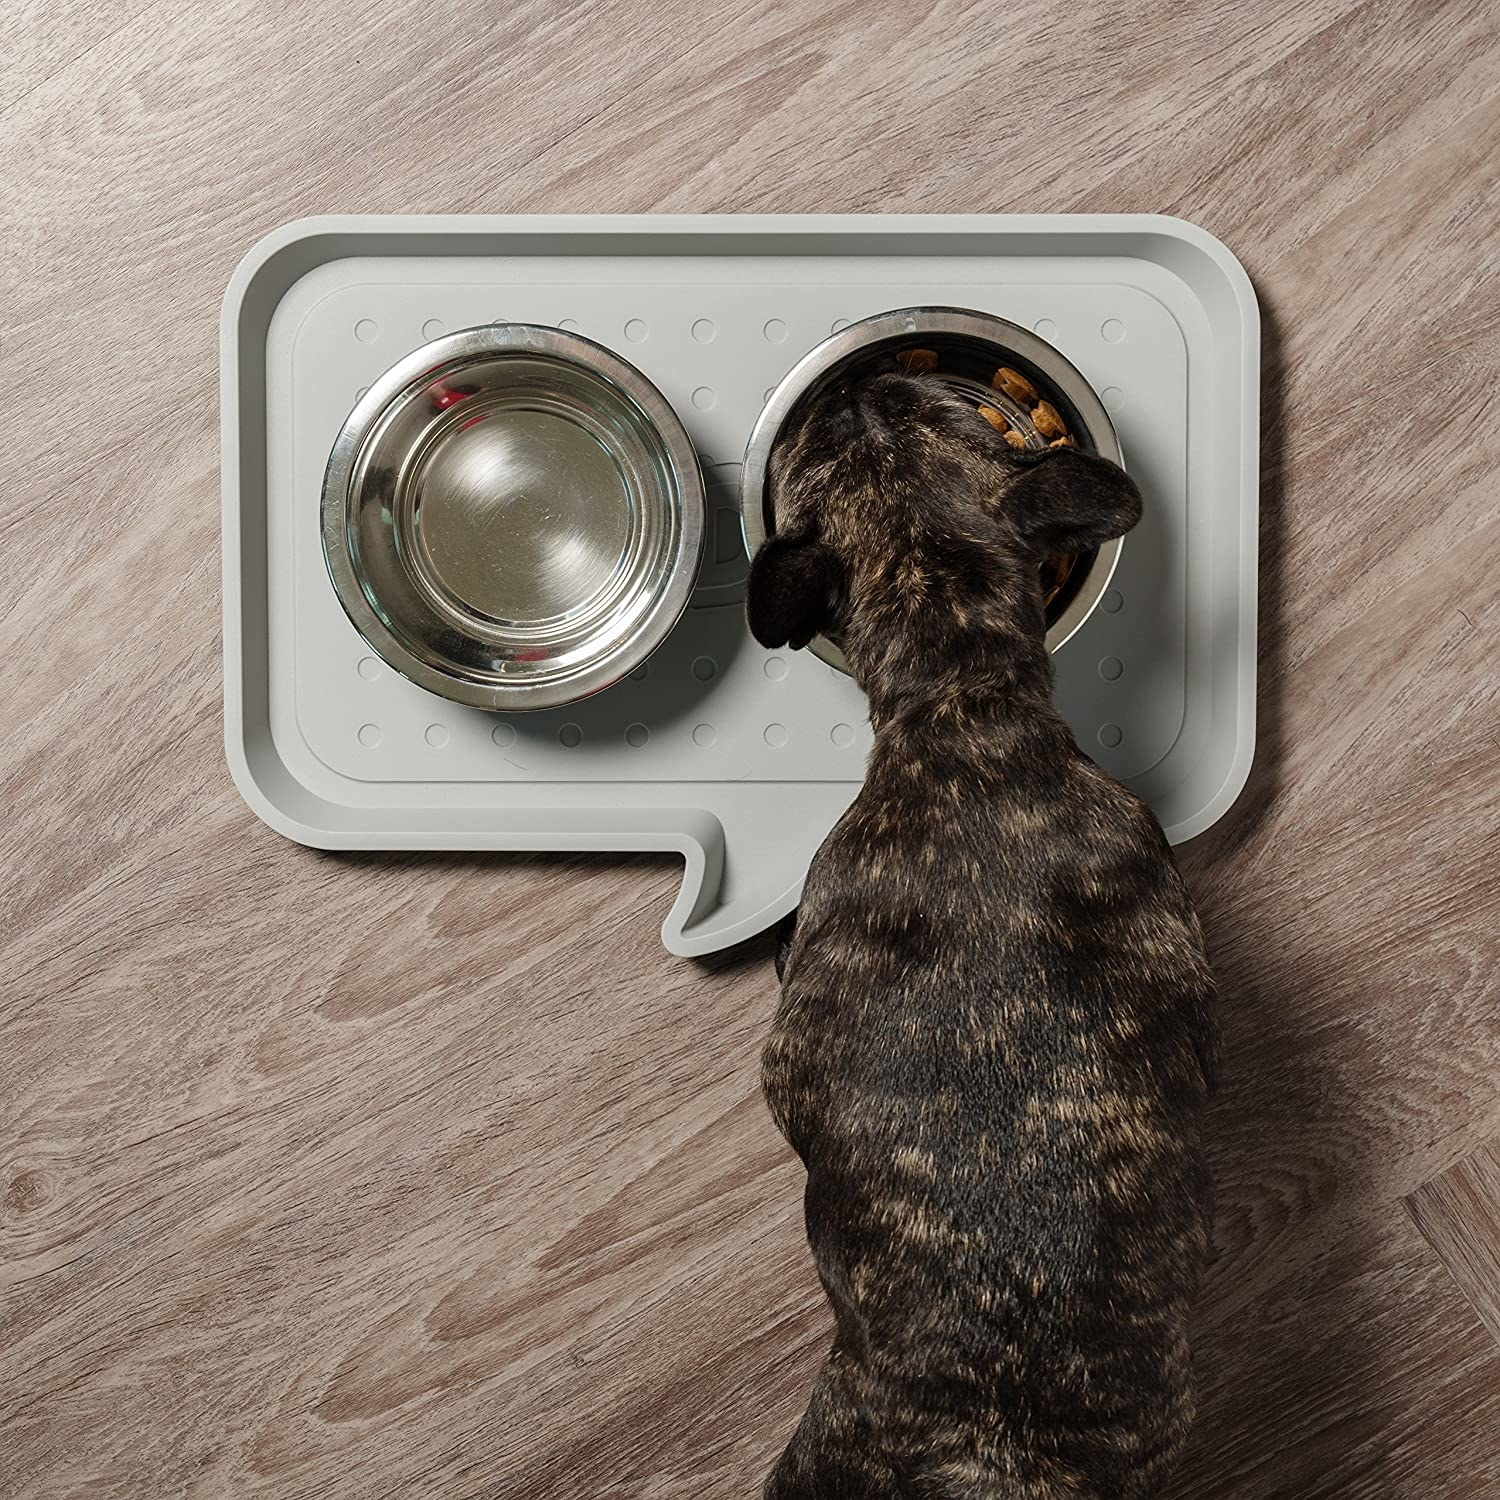 A French bulldog eating out of a bowl on the speech bubble mat